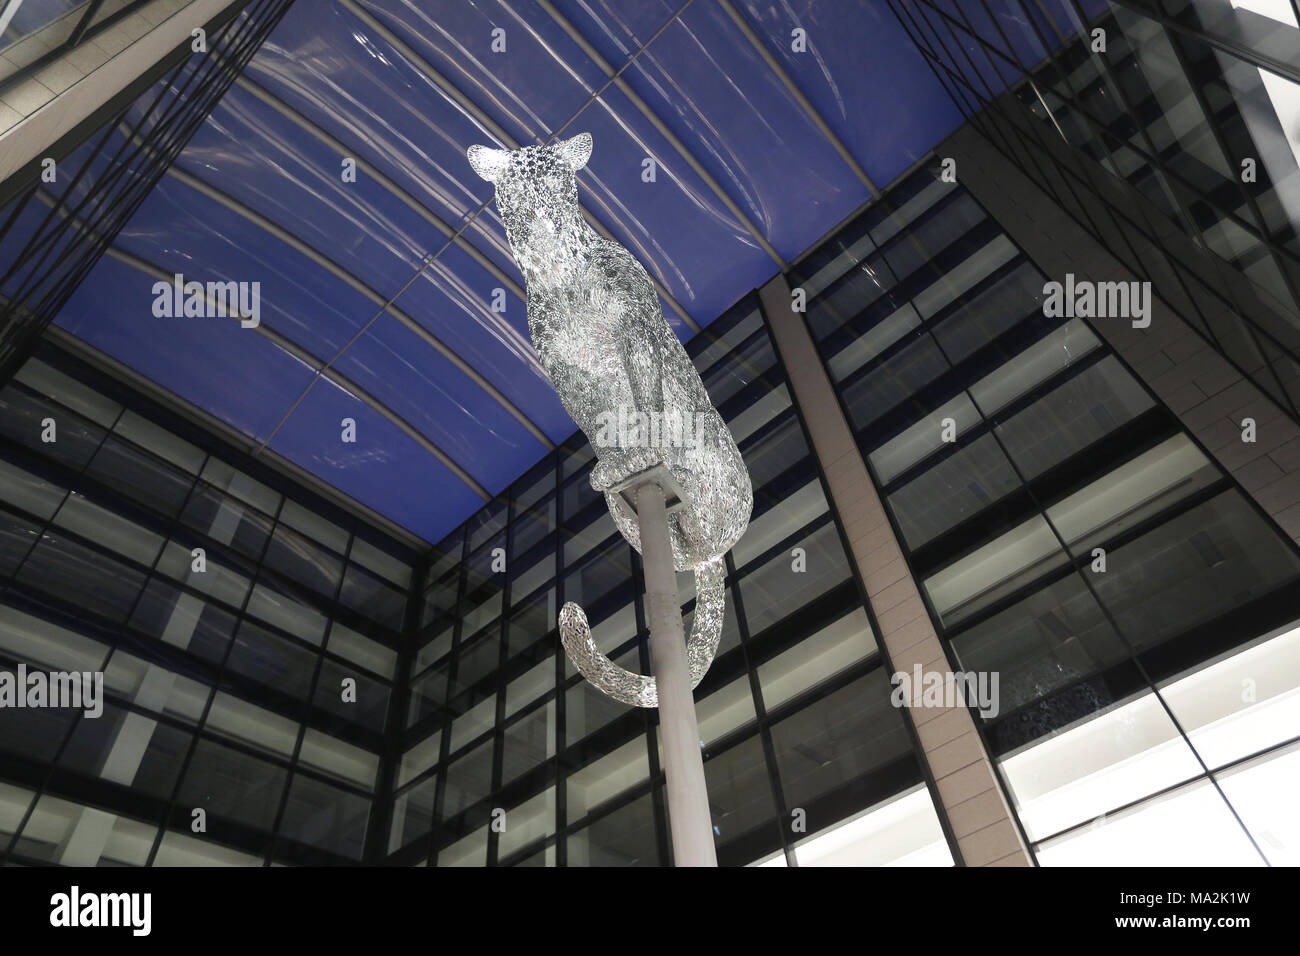 Leopard sculpture by Kelpies creator Andy Scott, which sits on a column in Marischal Square in Aberdeen, Scotland, UK Stock Photo